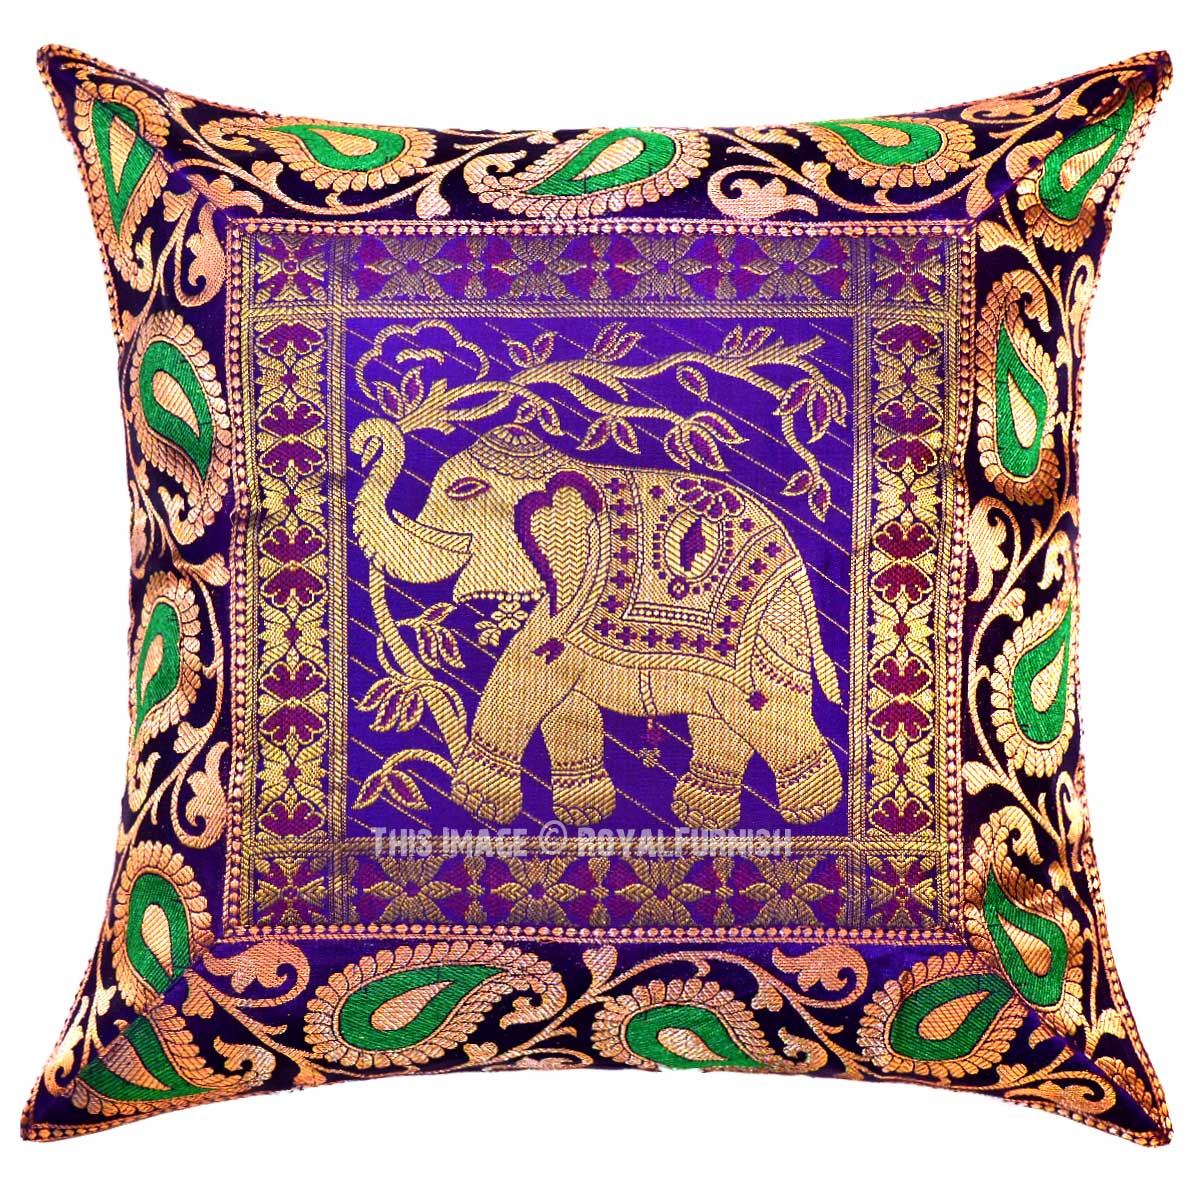 Purple Silk Throw Pillows : Purple Kerala Elephant Decorative and Accent Silk Throw Pillow Case 16X16 Inch - RoyalFurnish.com